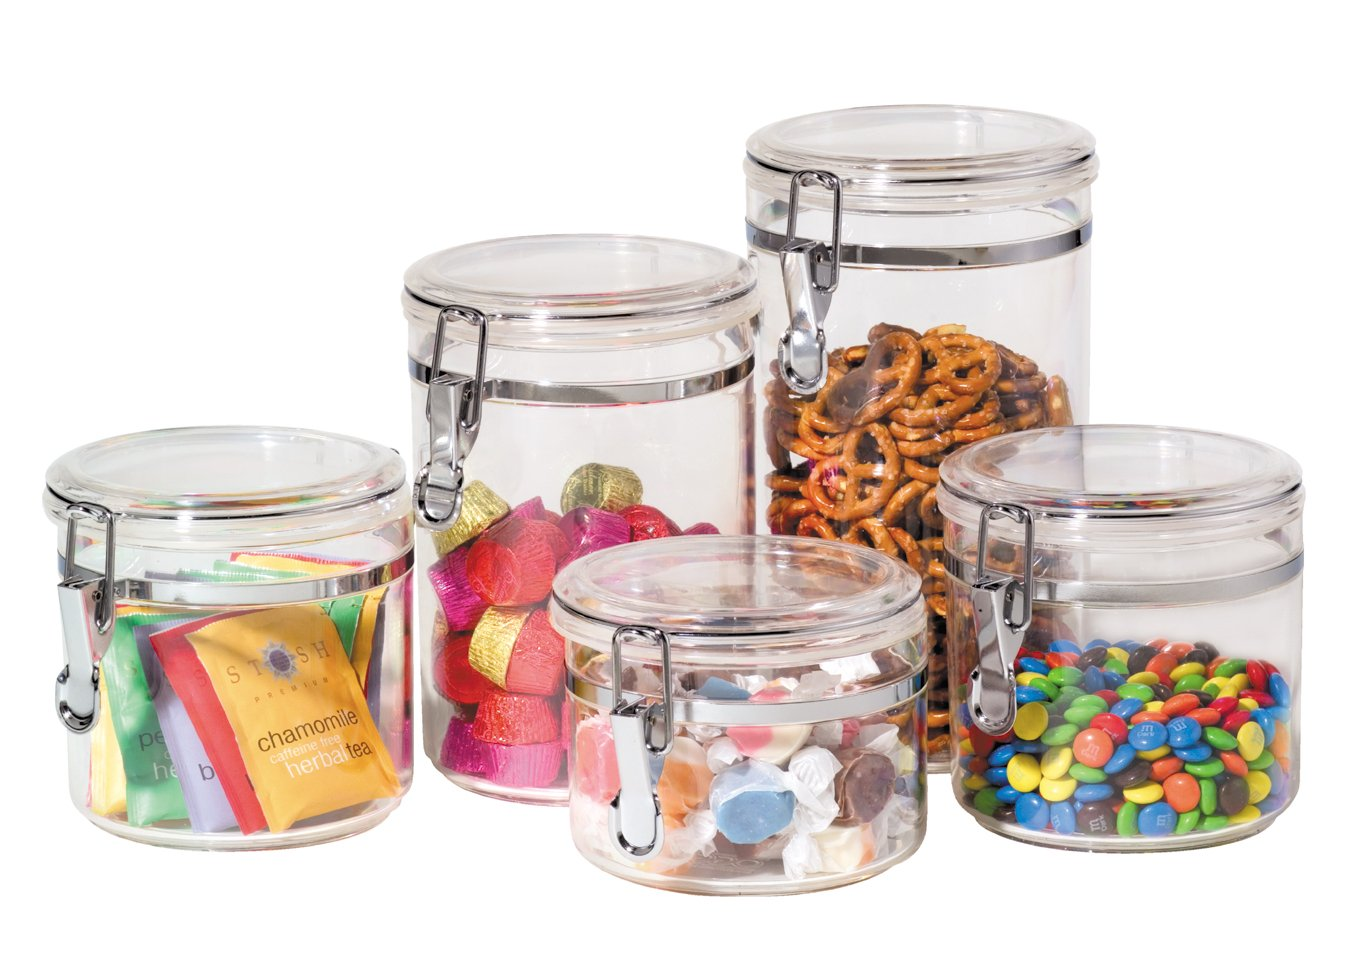 Amazon.com: Oggi 9322 5 Piece Acrylic Canister Set With Airtight Clamp  Lids Food Storage Container: Kitchen Storage And Organization Product Sets:  Kitchen U0026 ...